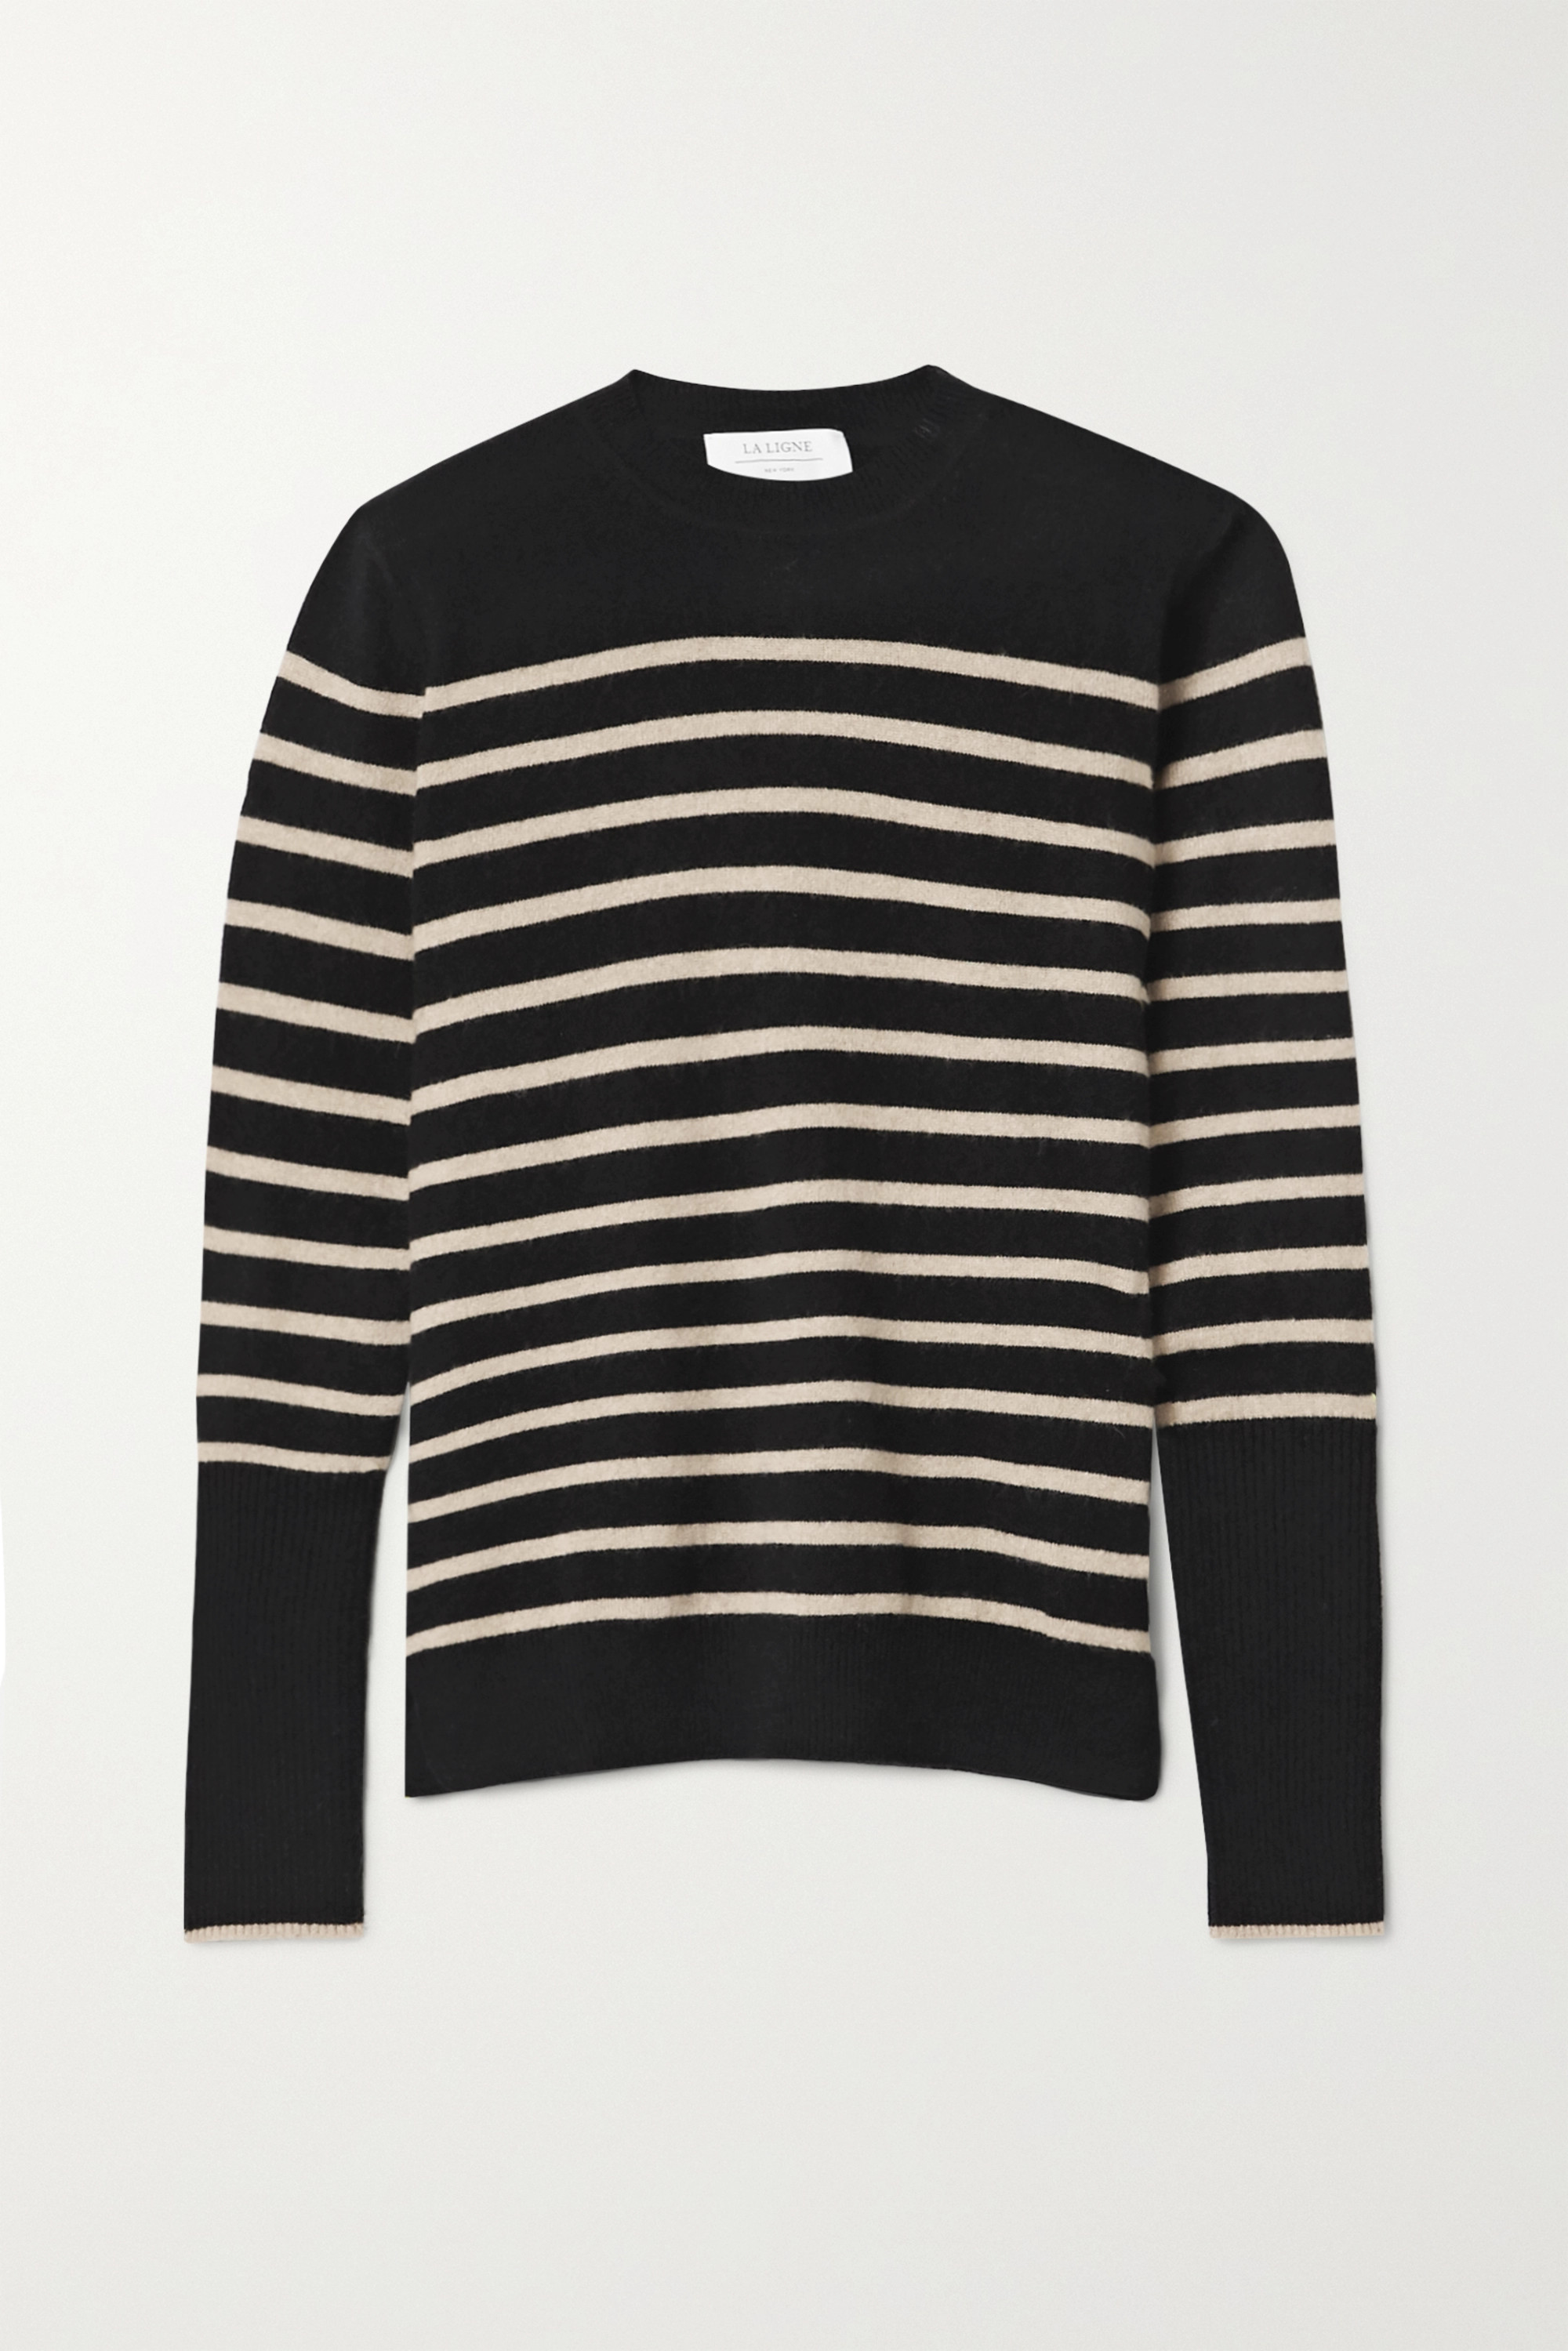 AAA Lean Lines striped cashmere sweater